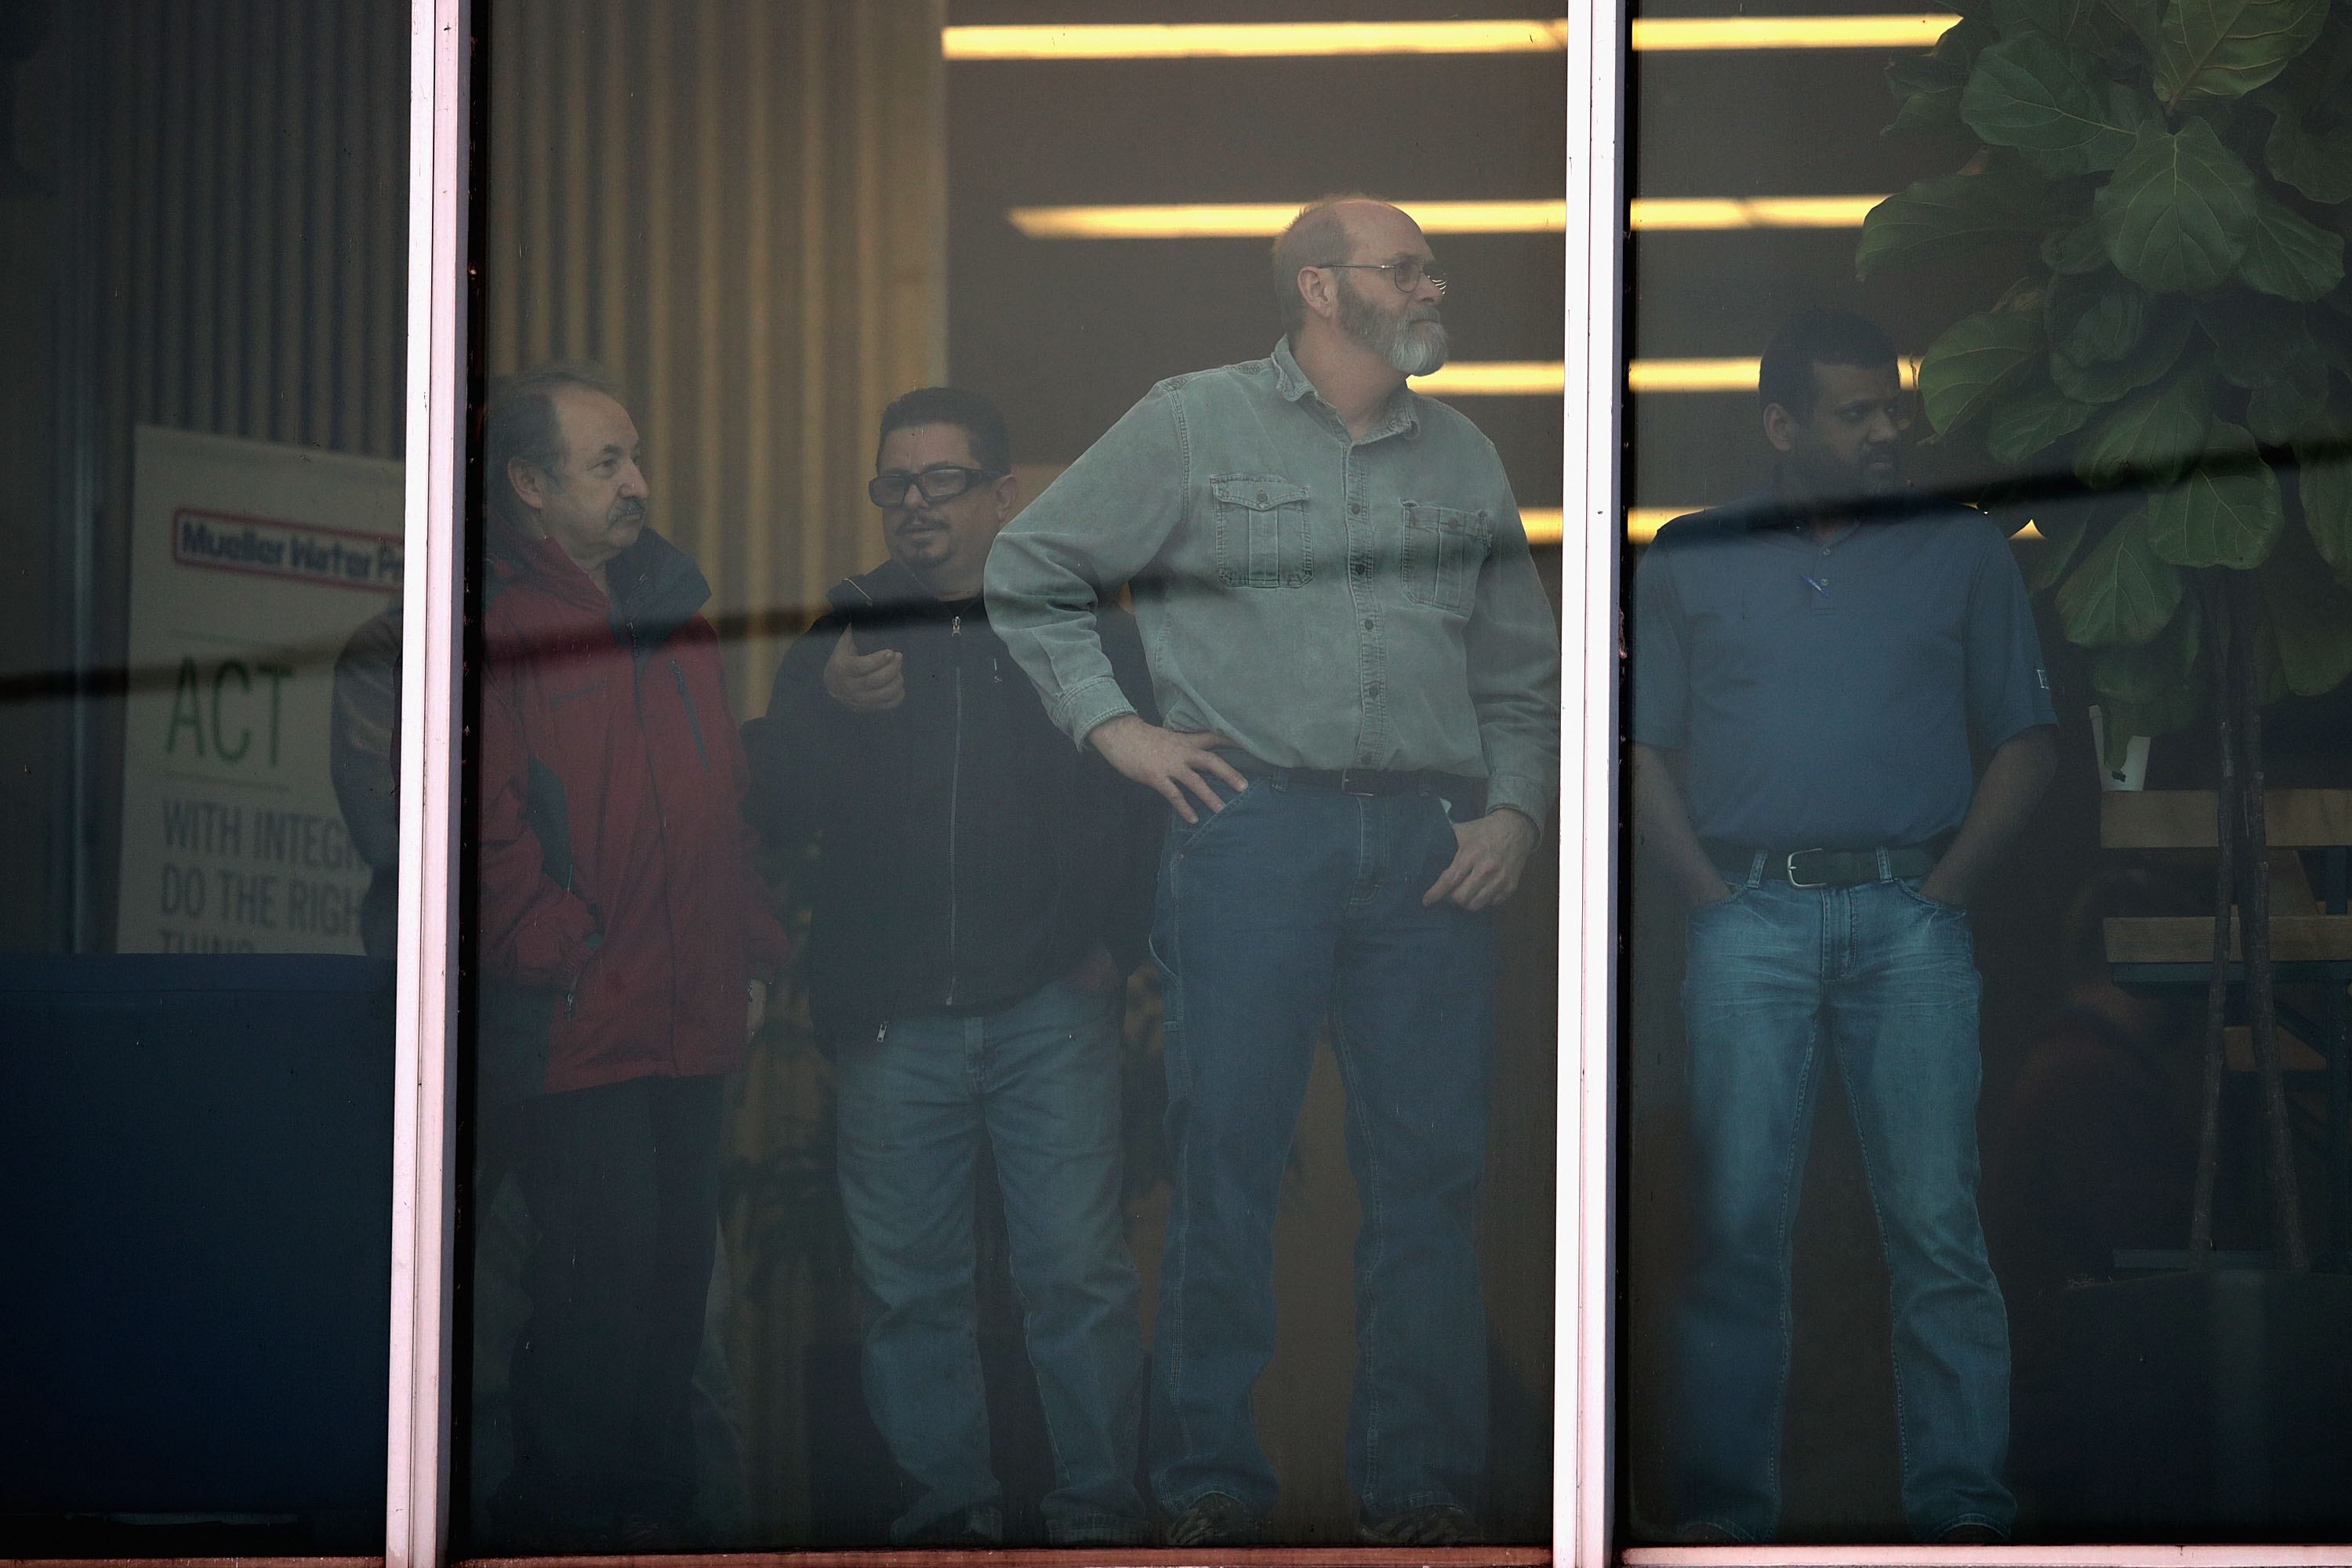 Workers look out an office window following a shooting at the Henry Pratt Company on February 15, 2019 in Aurora, Illinois. (Photo by Scott Olson/Getty Images)